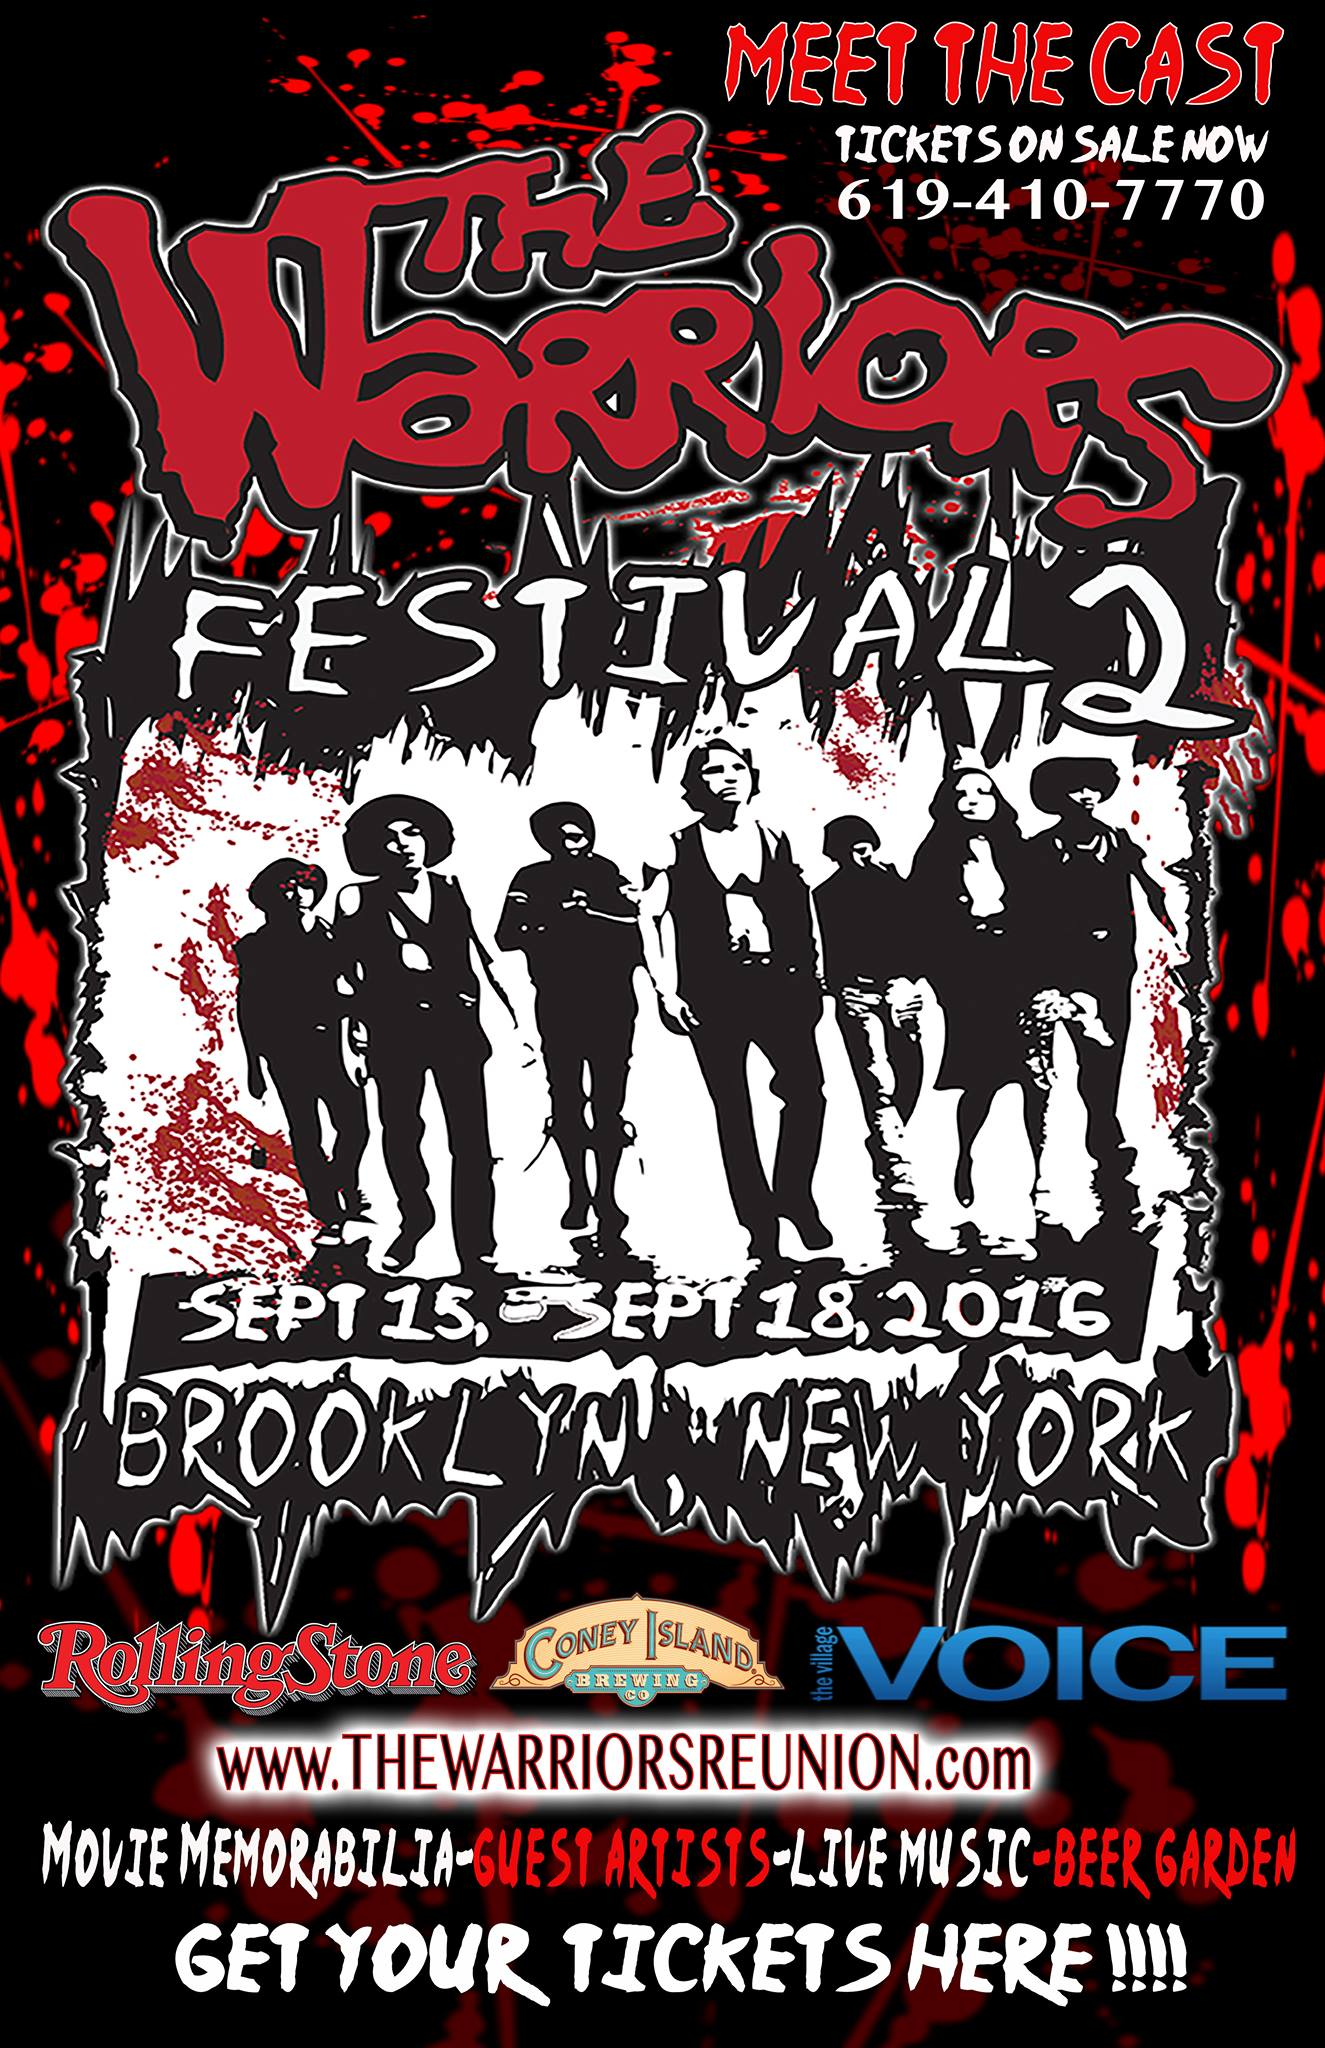 The Warriors Fest 2 – Come Out To Play In September 2016